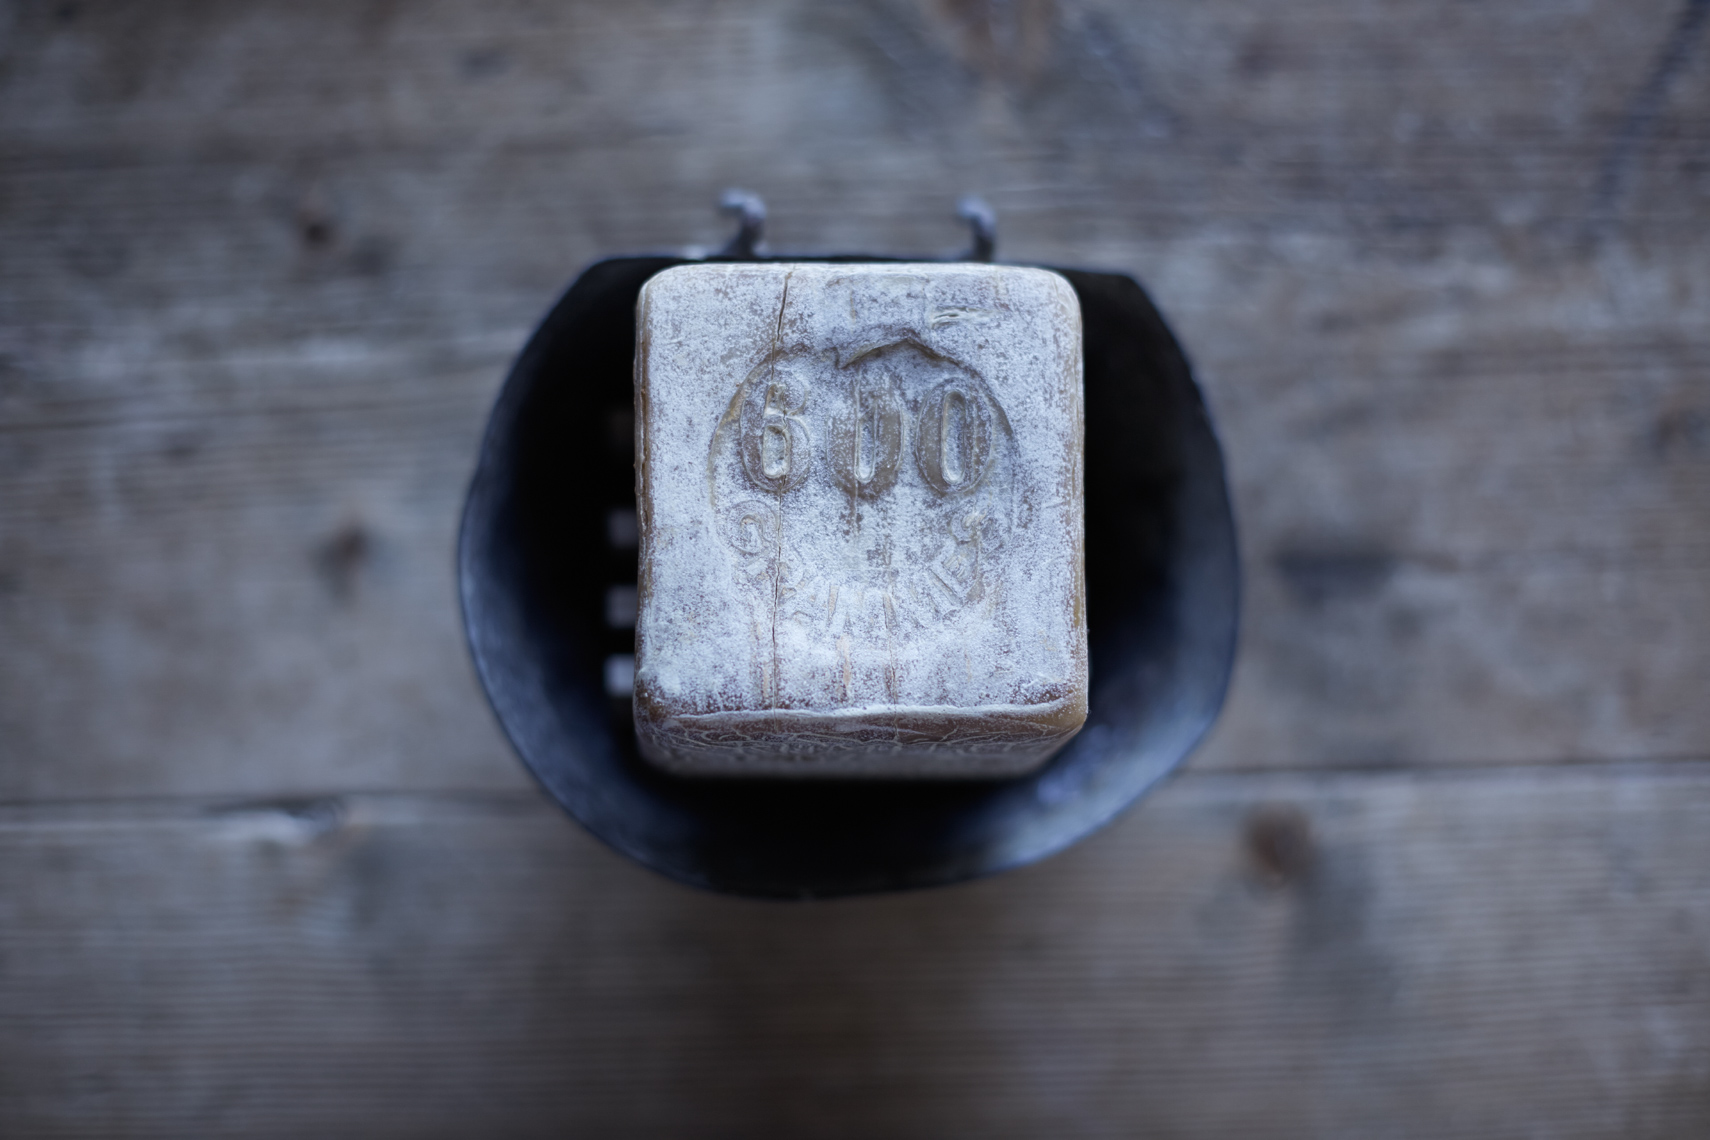 detail of bar of soap on metal cup on wooden surface